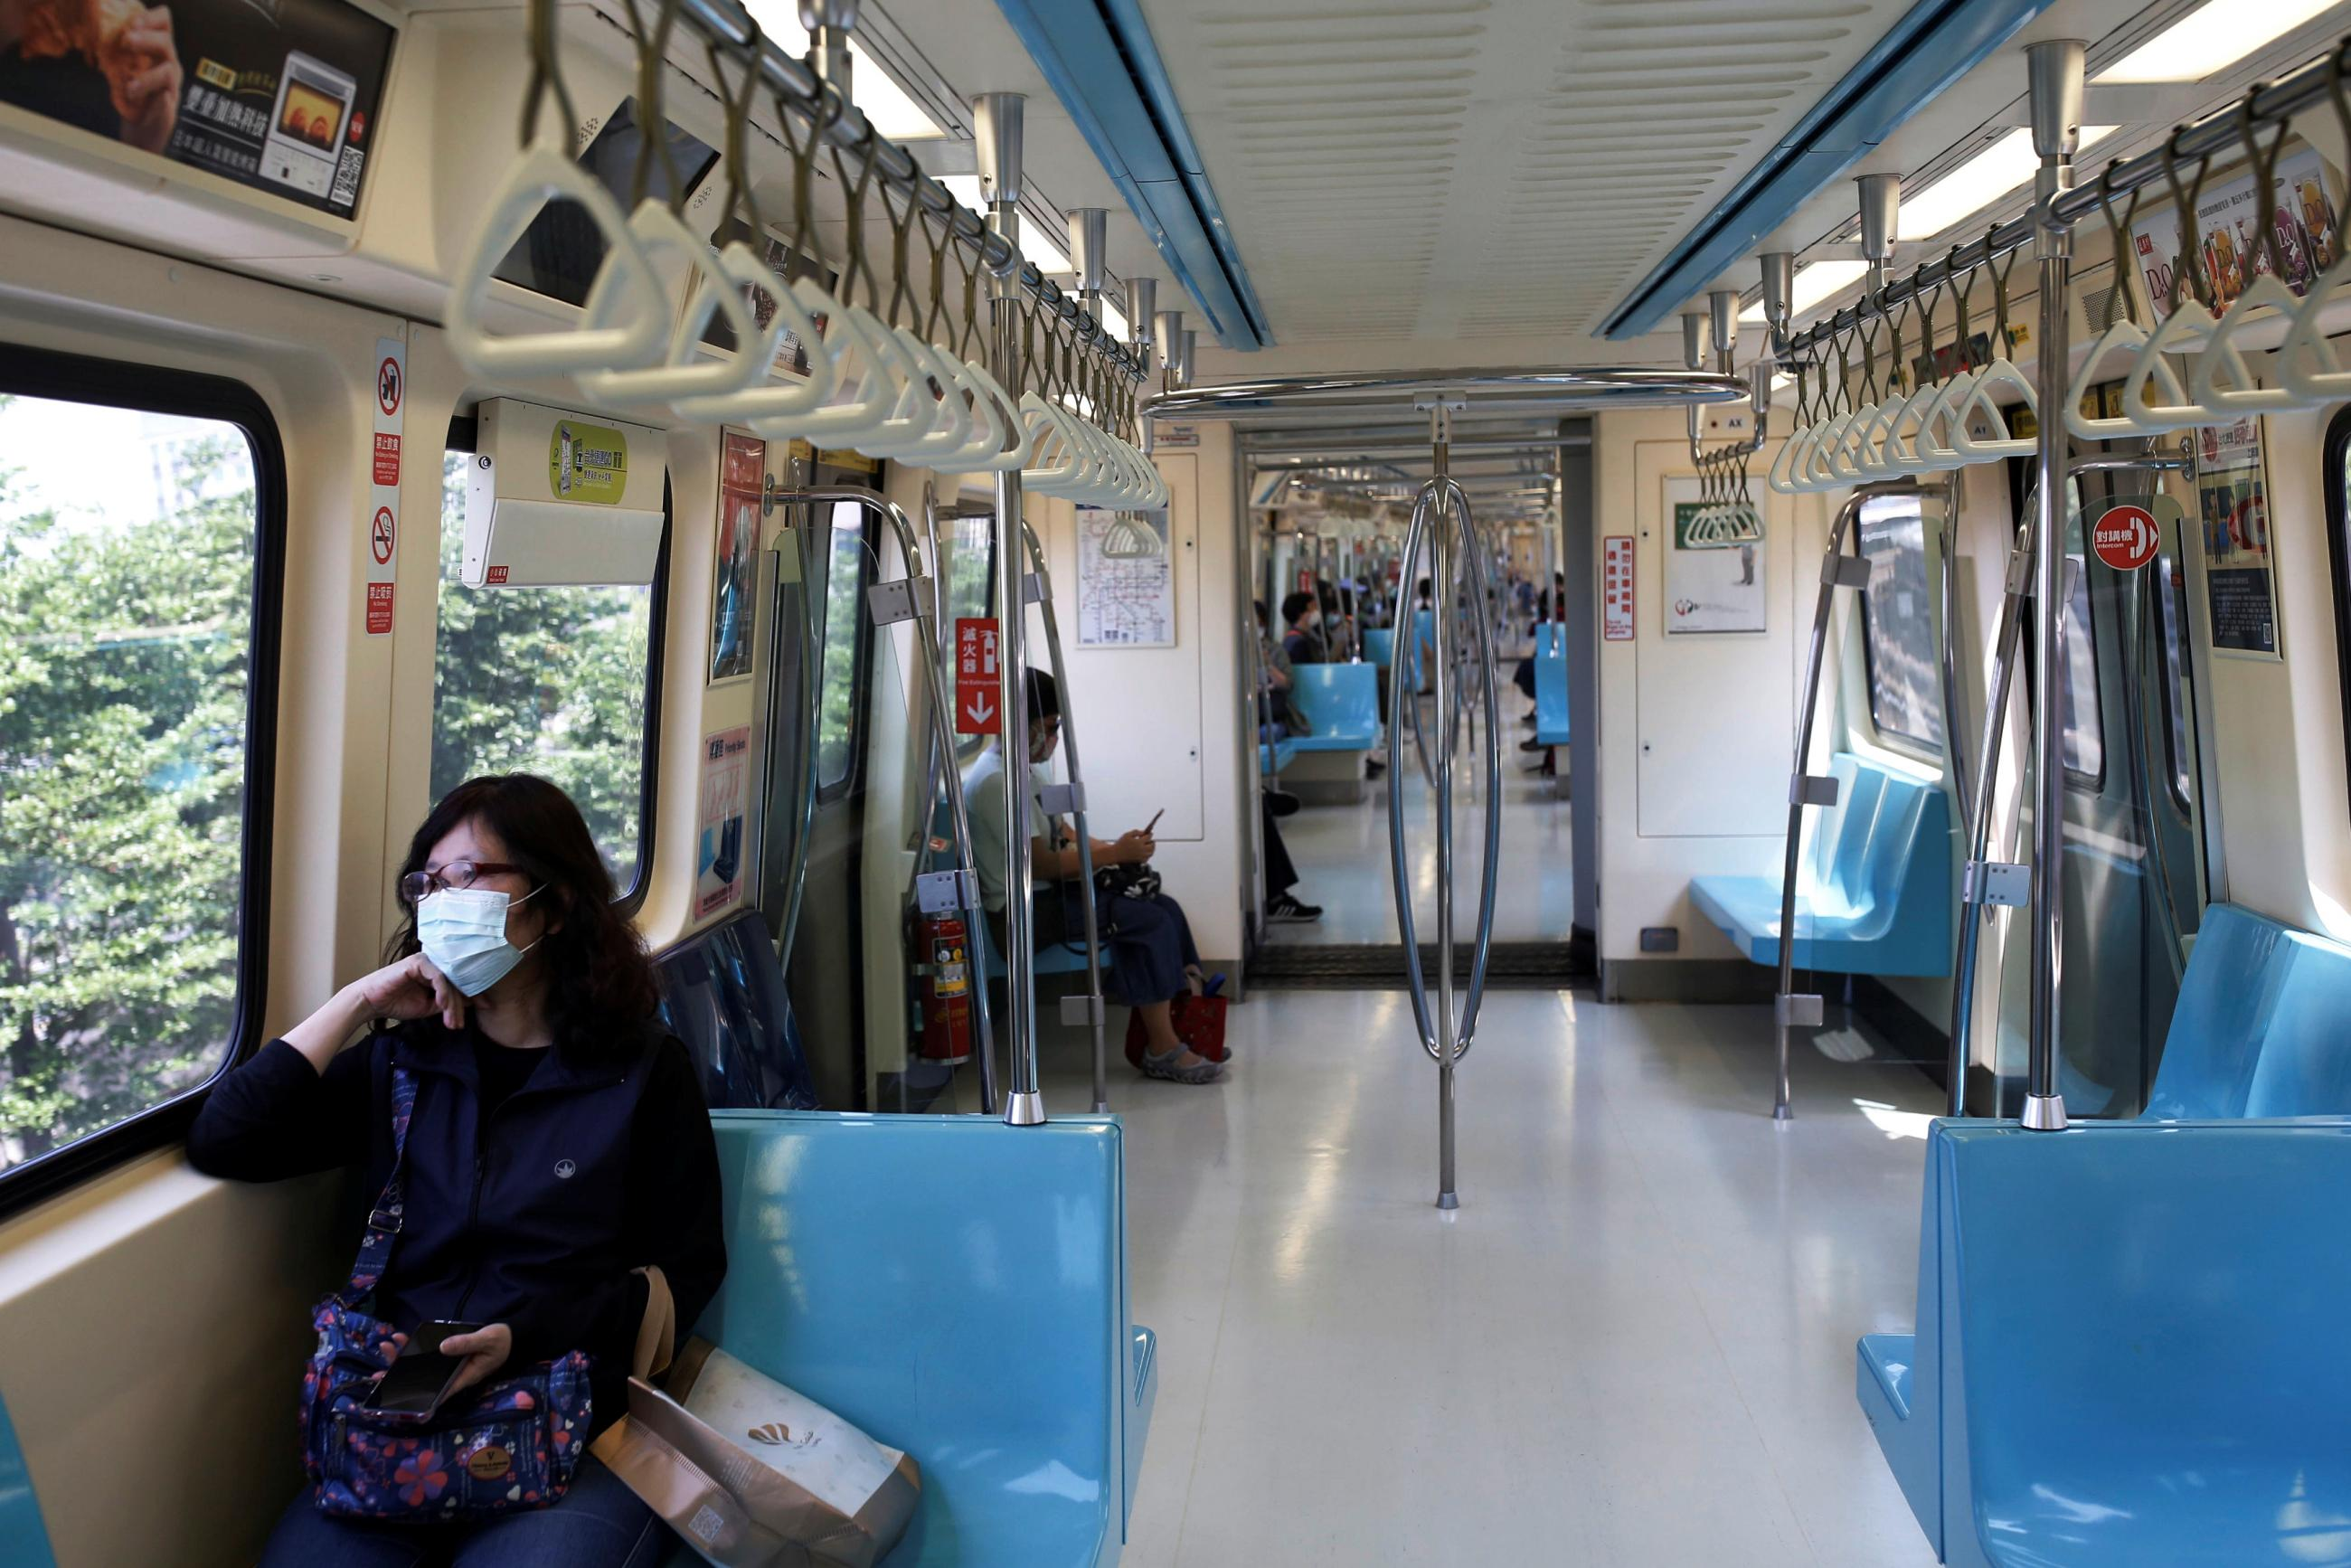 A woman wears a face mask as a mandatory precaution for riding on public transportation amid the coronavirus disease (COVID-19) outbreak, in Taipei, Taiwan, April 30, 2020.